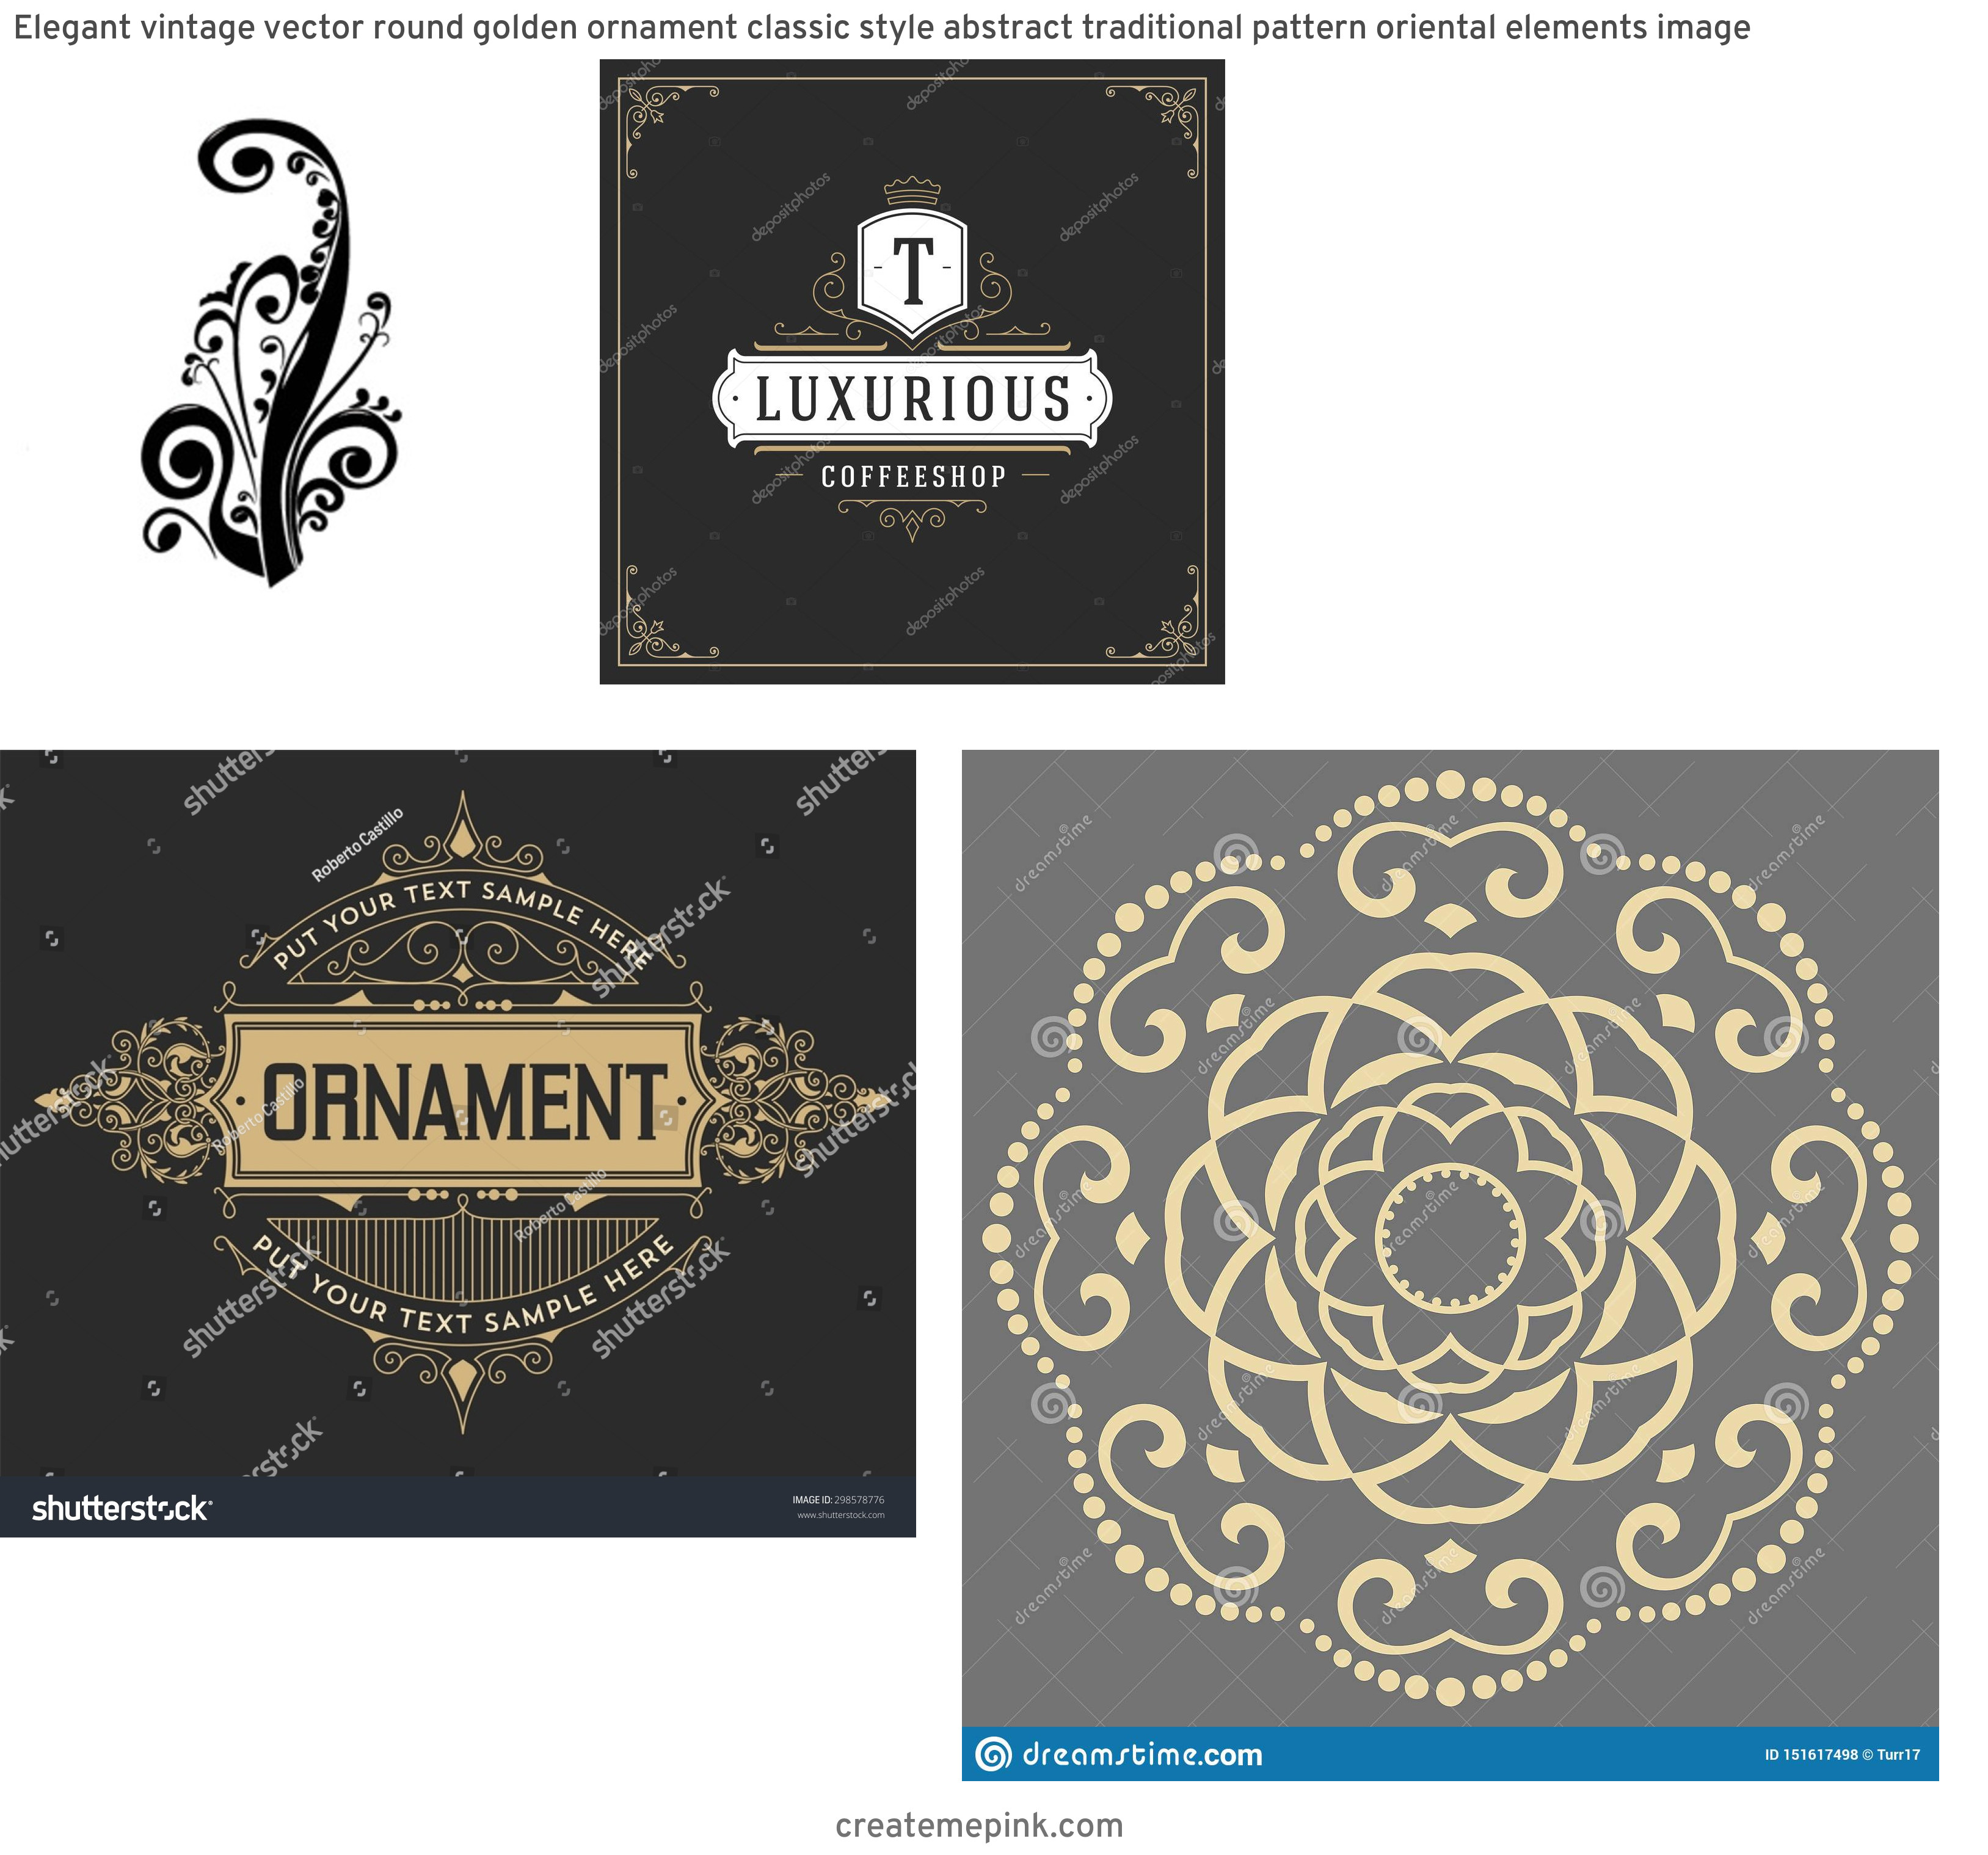 Elegant Vector Flourishes: Elegant Vintage Vector Round Golden Ornament Classic Style Abstract Traditional Pattern Oriental Elements Image